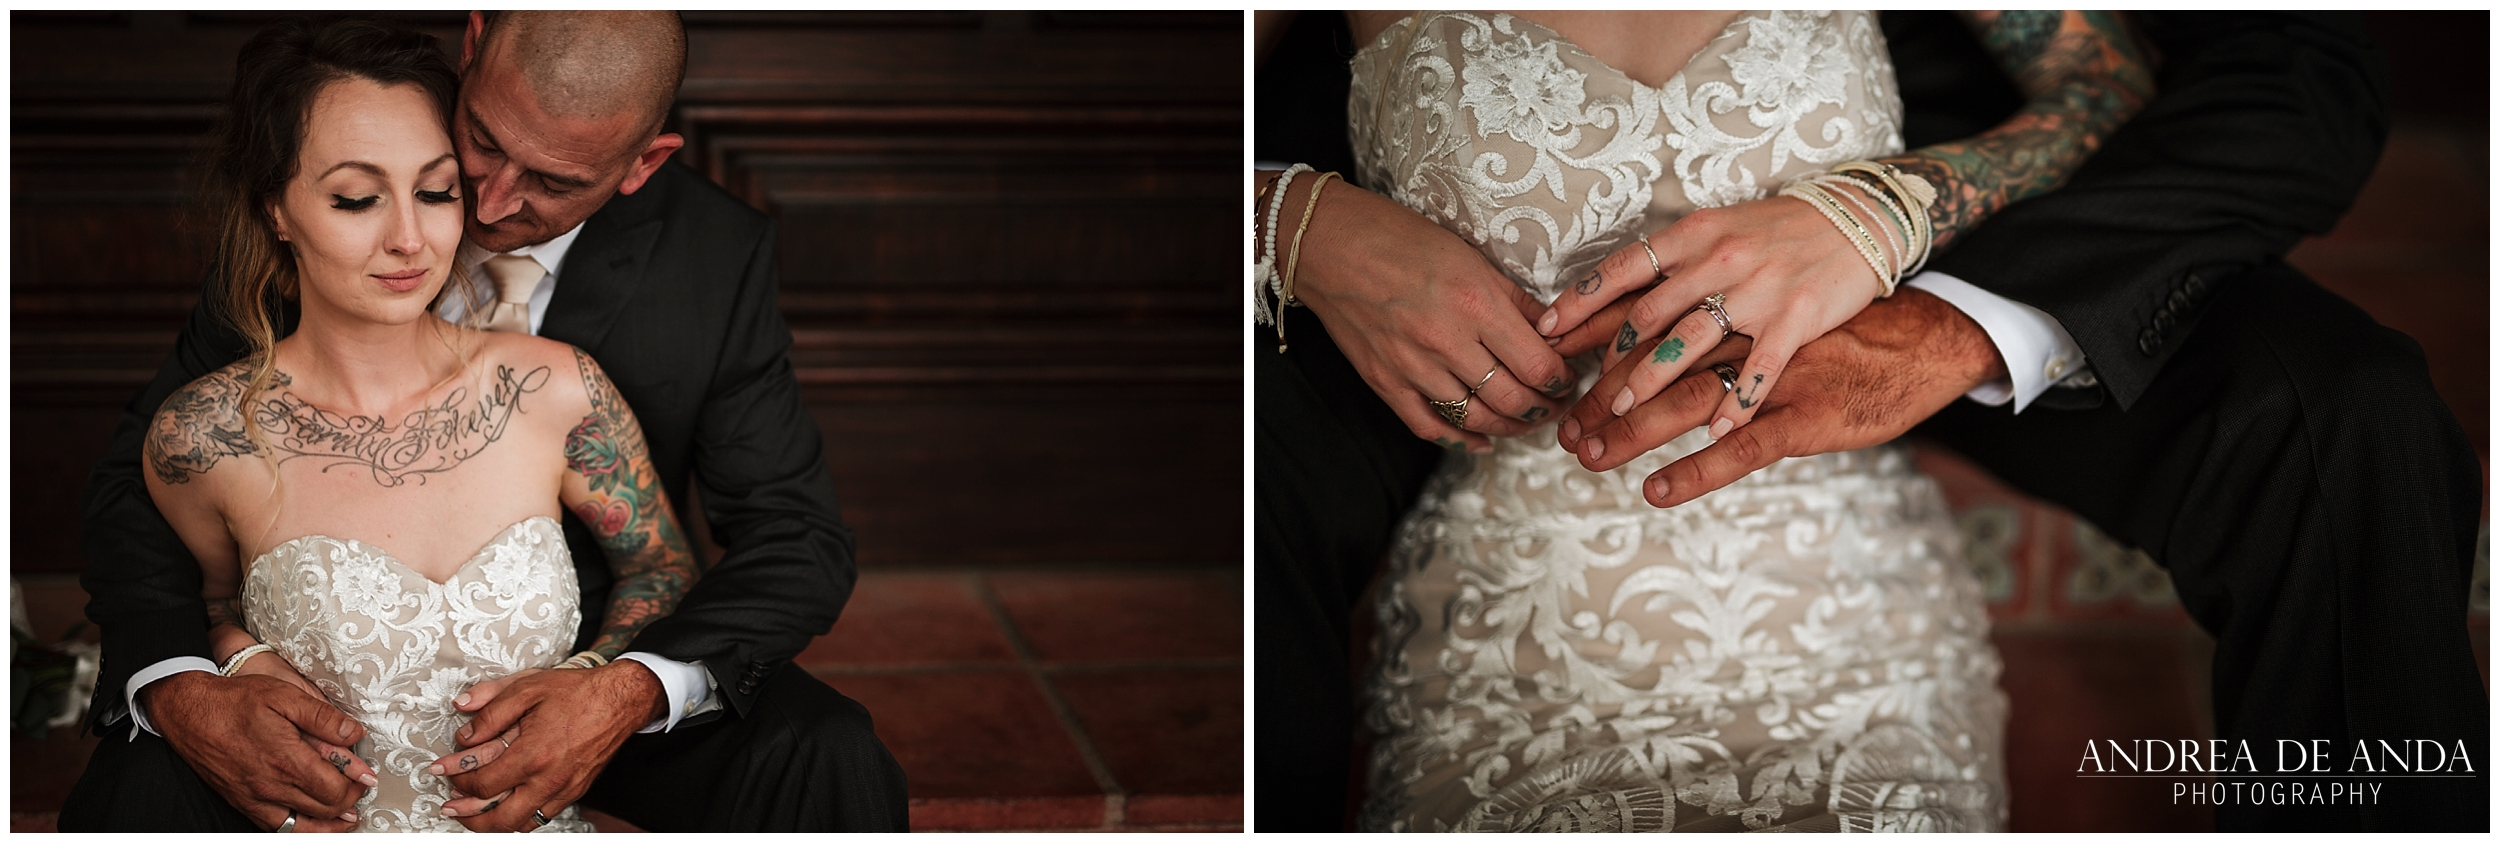 Santa Barbara Courthouse Elopement by Andrea de Anda Photography__0016.jpg